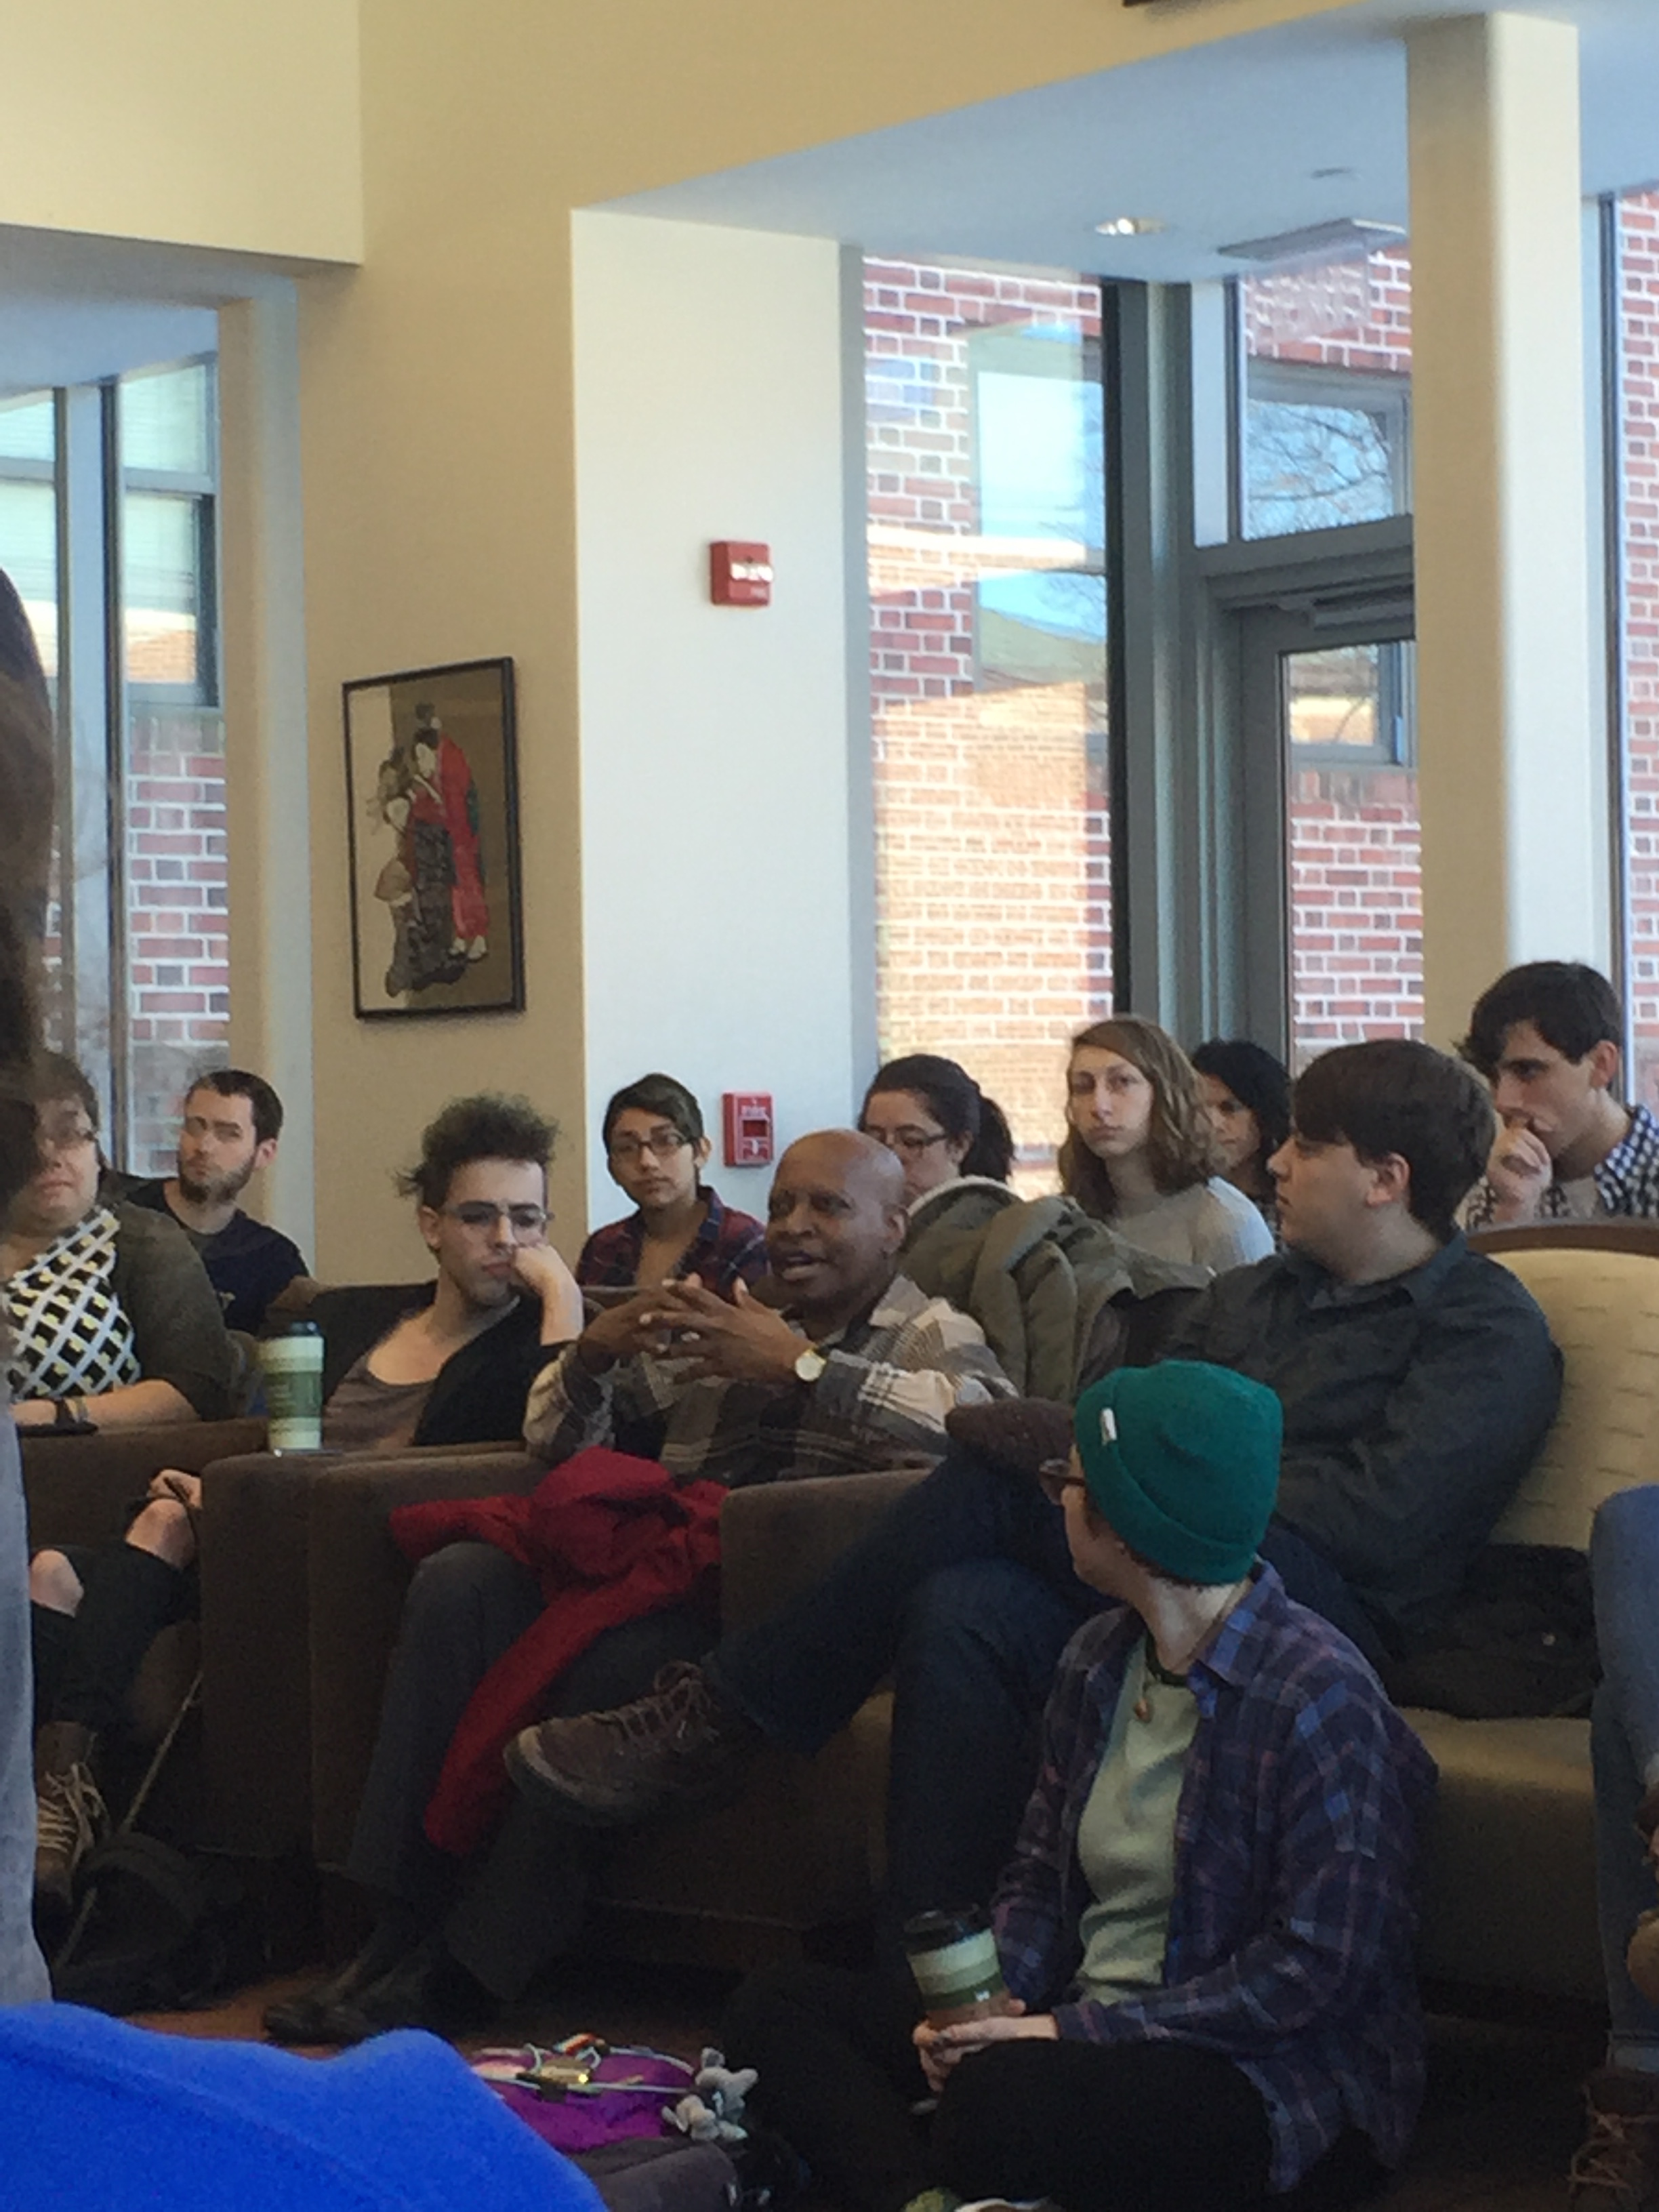 At the forum in Brooks College House, students, faculty, and others in attendance shared their experiences and views on discrimination at F&M.